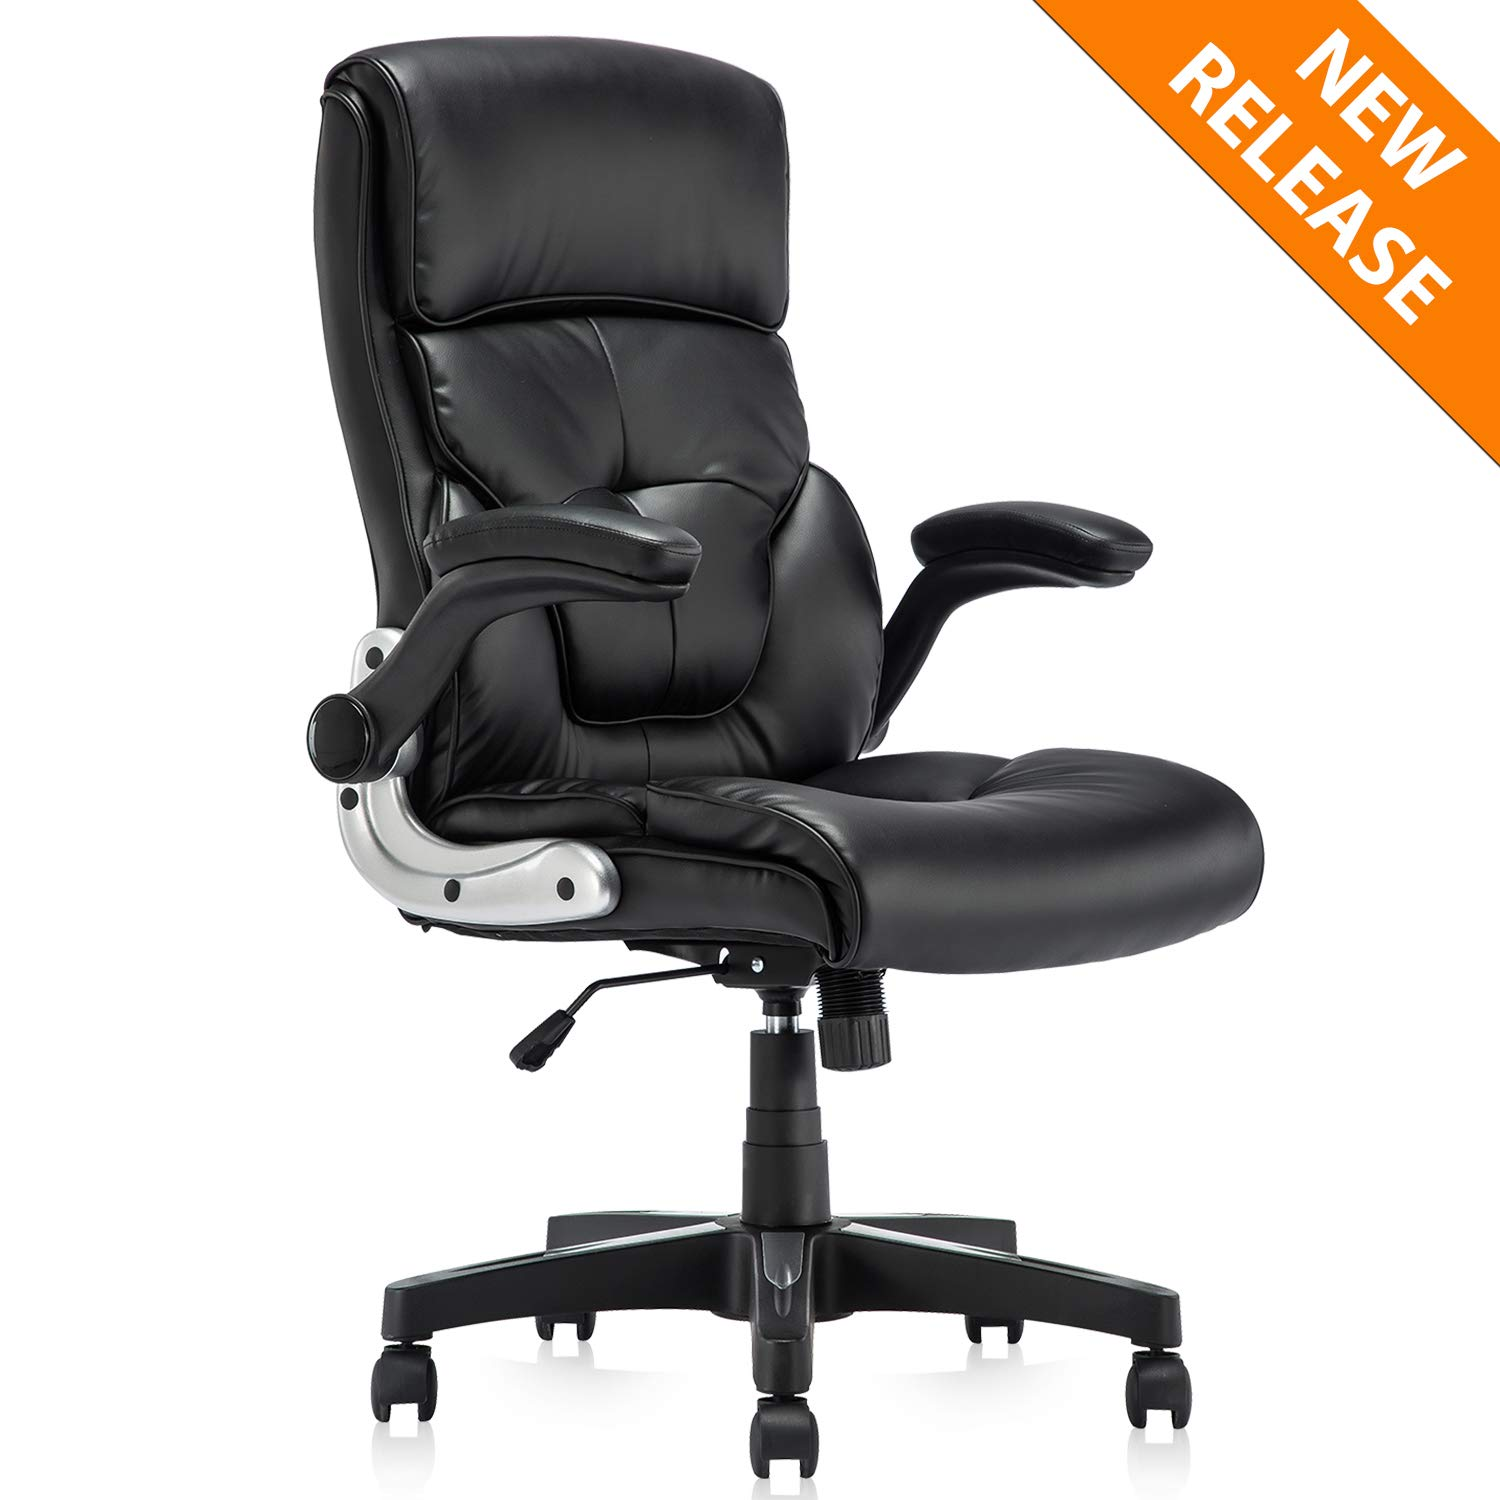 YAMASORO Ergonomic Office Chair Black Leather Computer Desk Chair High-Back Comfort Gaming Chair with Flip-Up Arms by YAMASORO